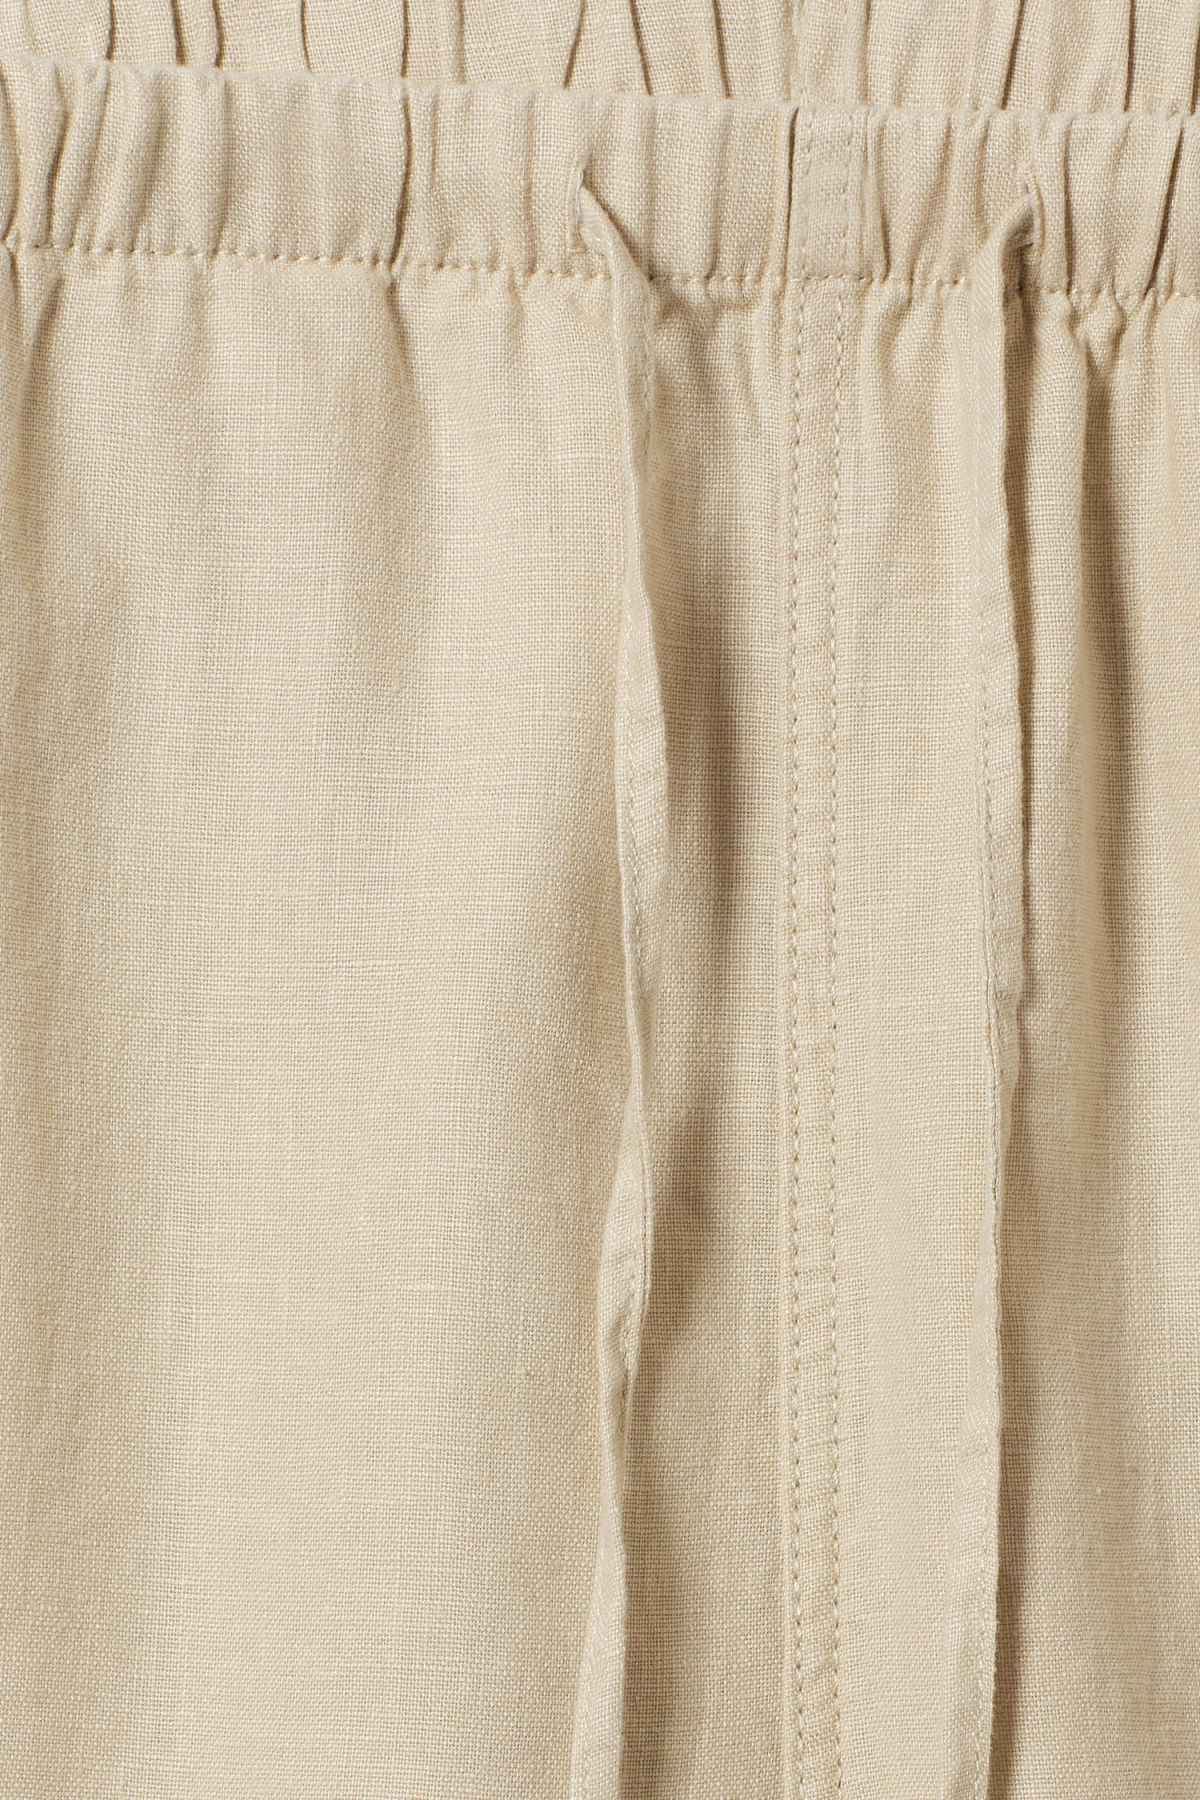 Detailed image of Weekday eskil linen shorts in beige